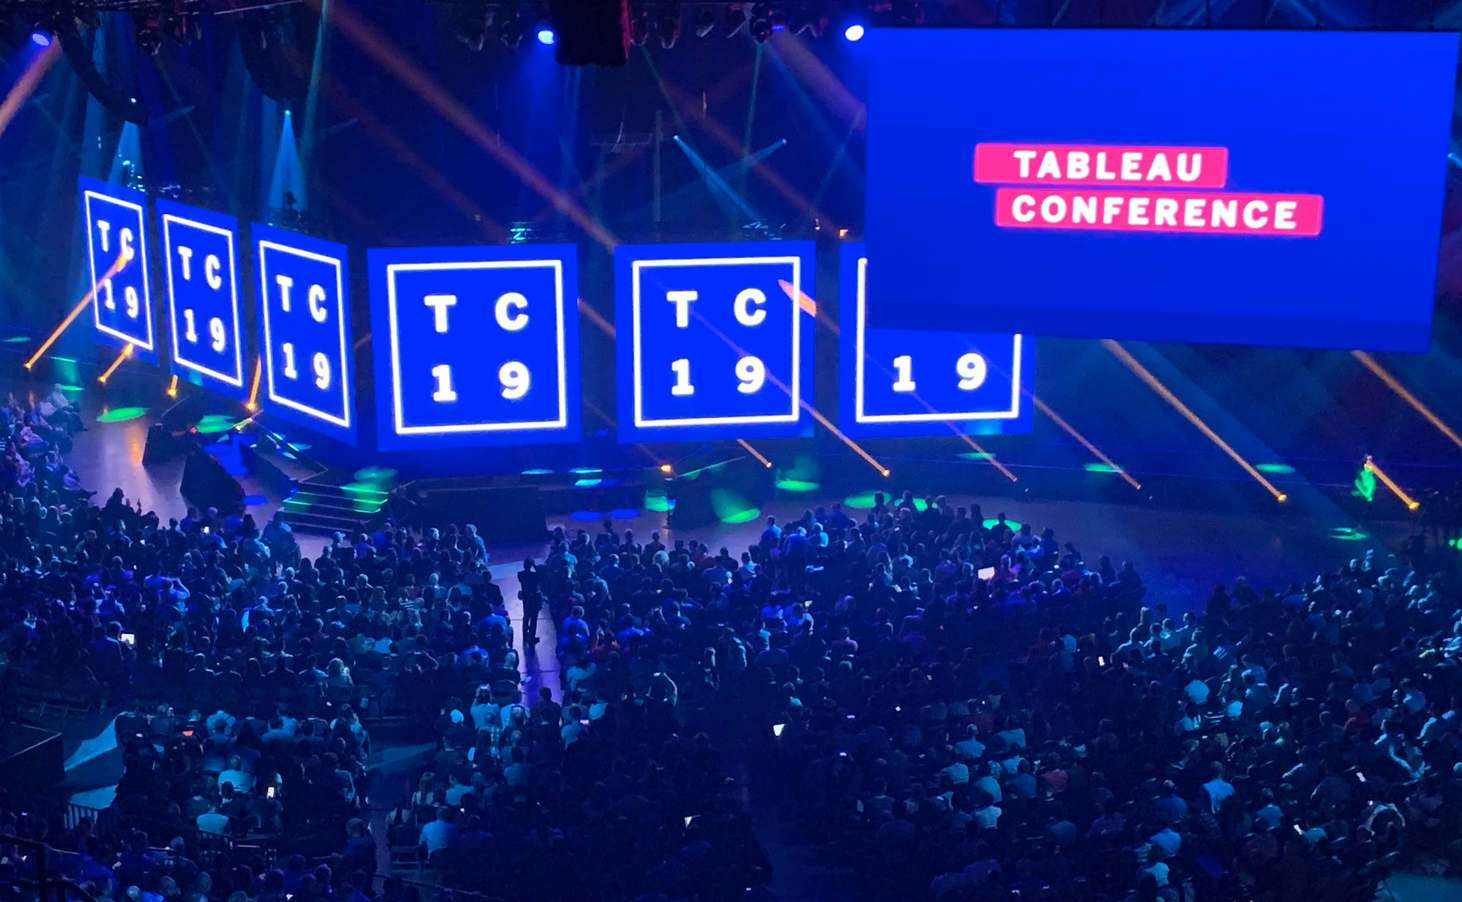 Insights from Tableau Conference 2019